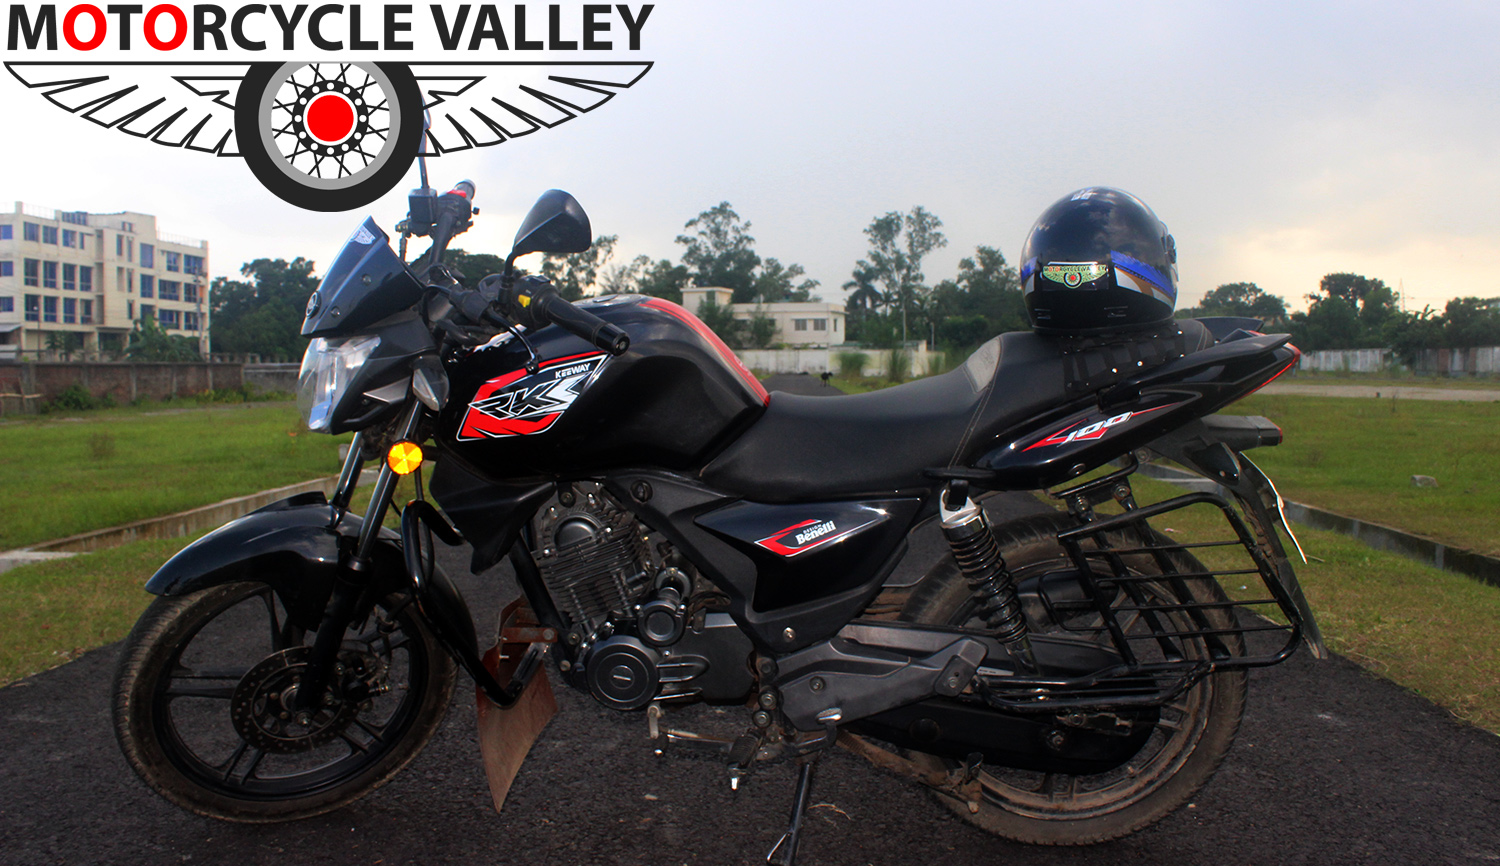 Keeway-RKS-100-Review-by-Team-MotorcycleValley